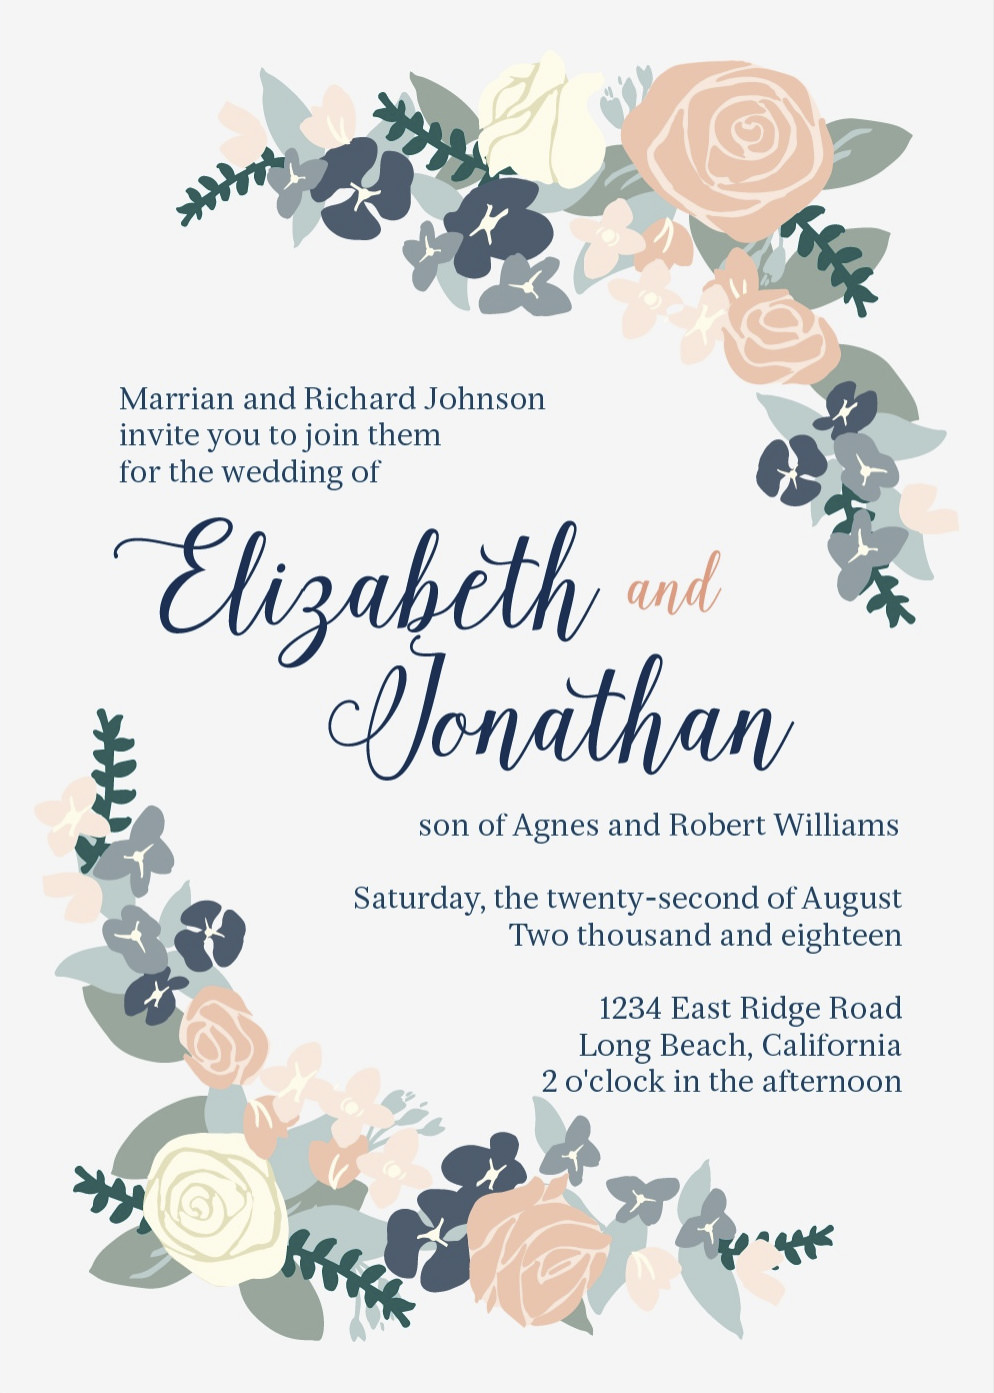 Basic Invite Wedding Invitation with floral pattern